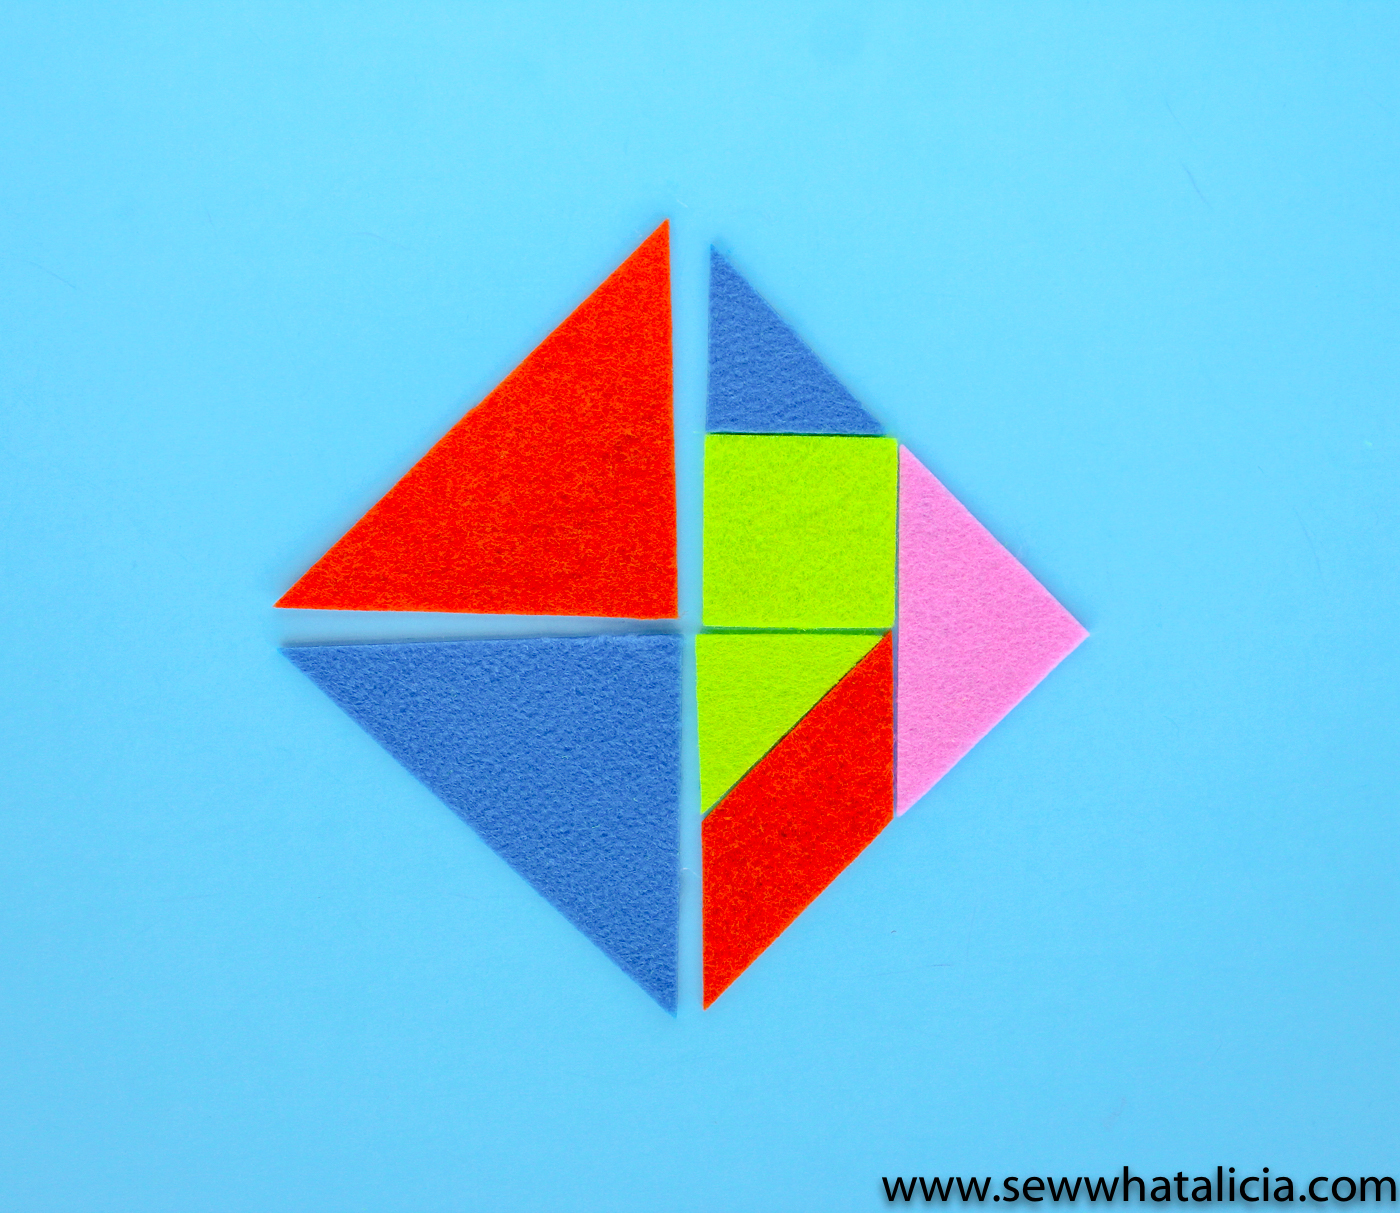 photograph relating to Tangram Printable Pdf called Cuttable and Printable Tangrams PDF - Sew What, Alicia?